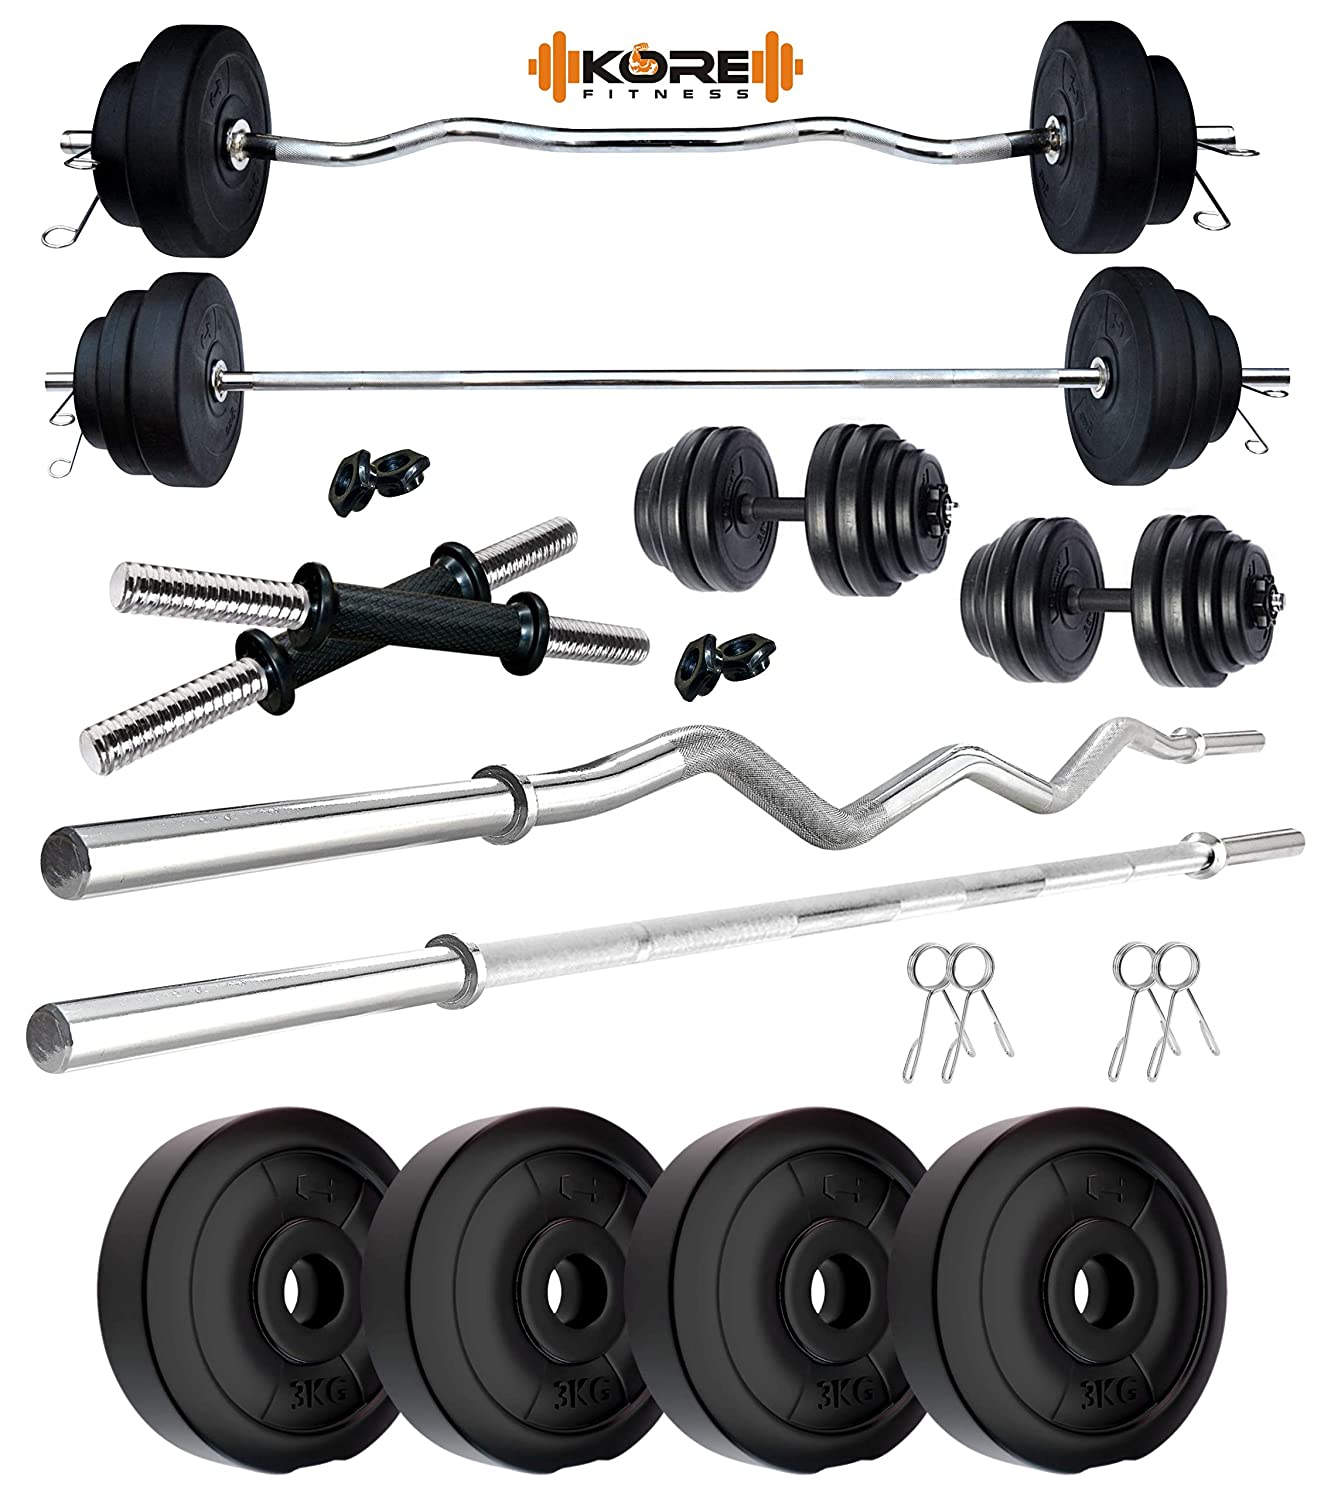 Kore Combo Home Gym Kit